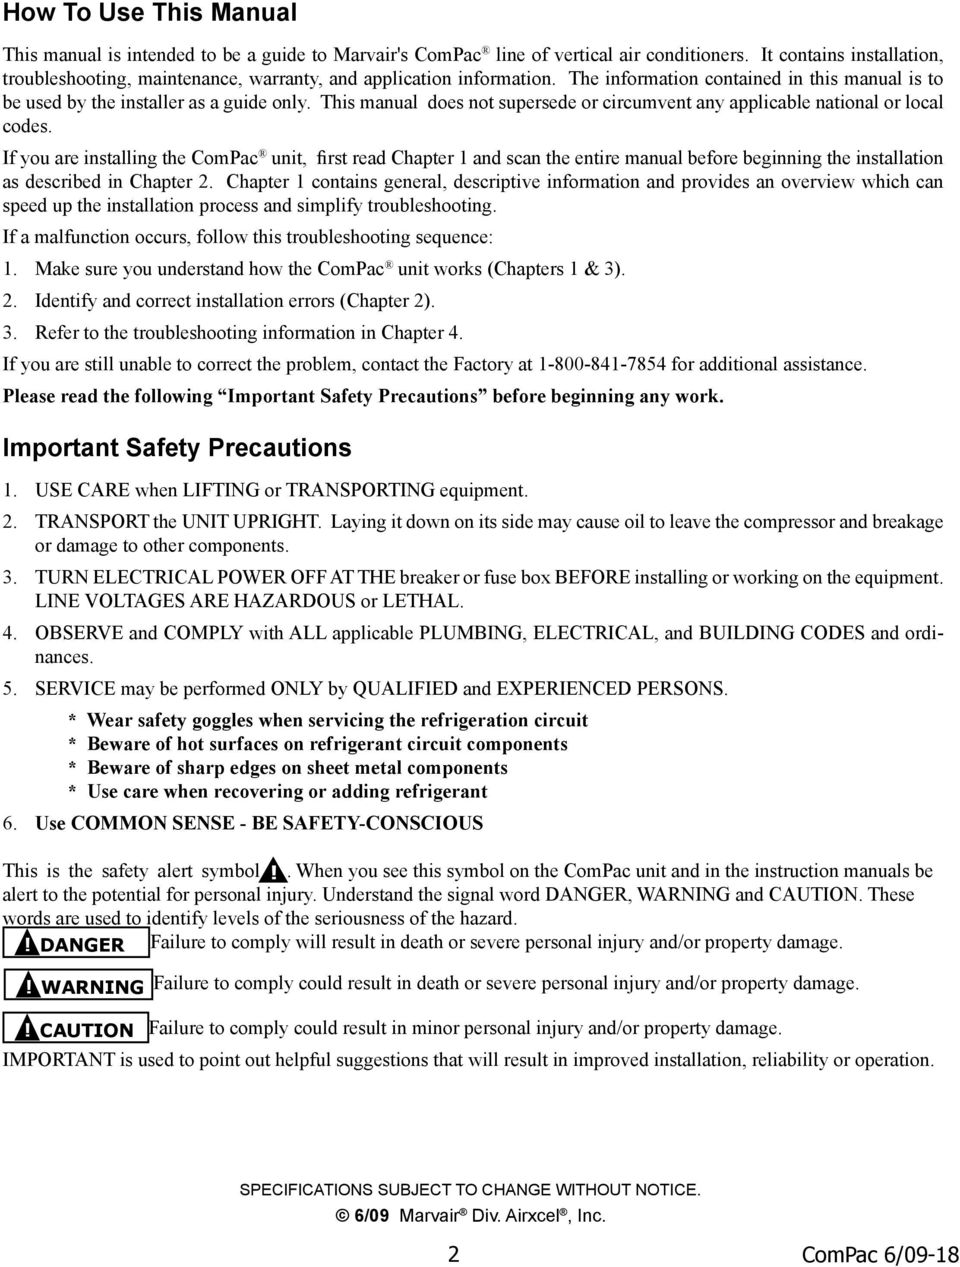 compac i and compac ii air conditioner product manual pdf this manual does not supersede or circumvent any applicable national or local codes